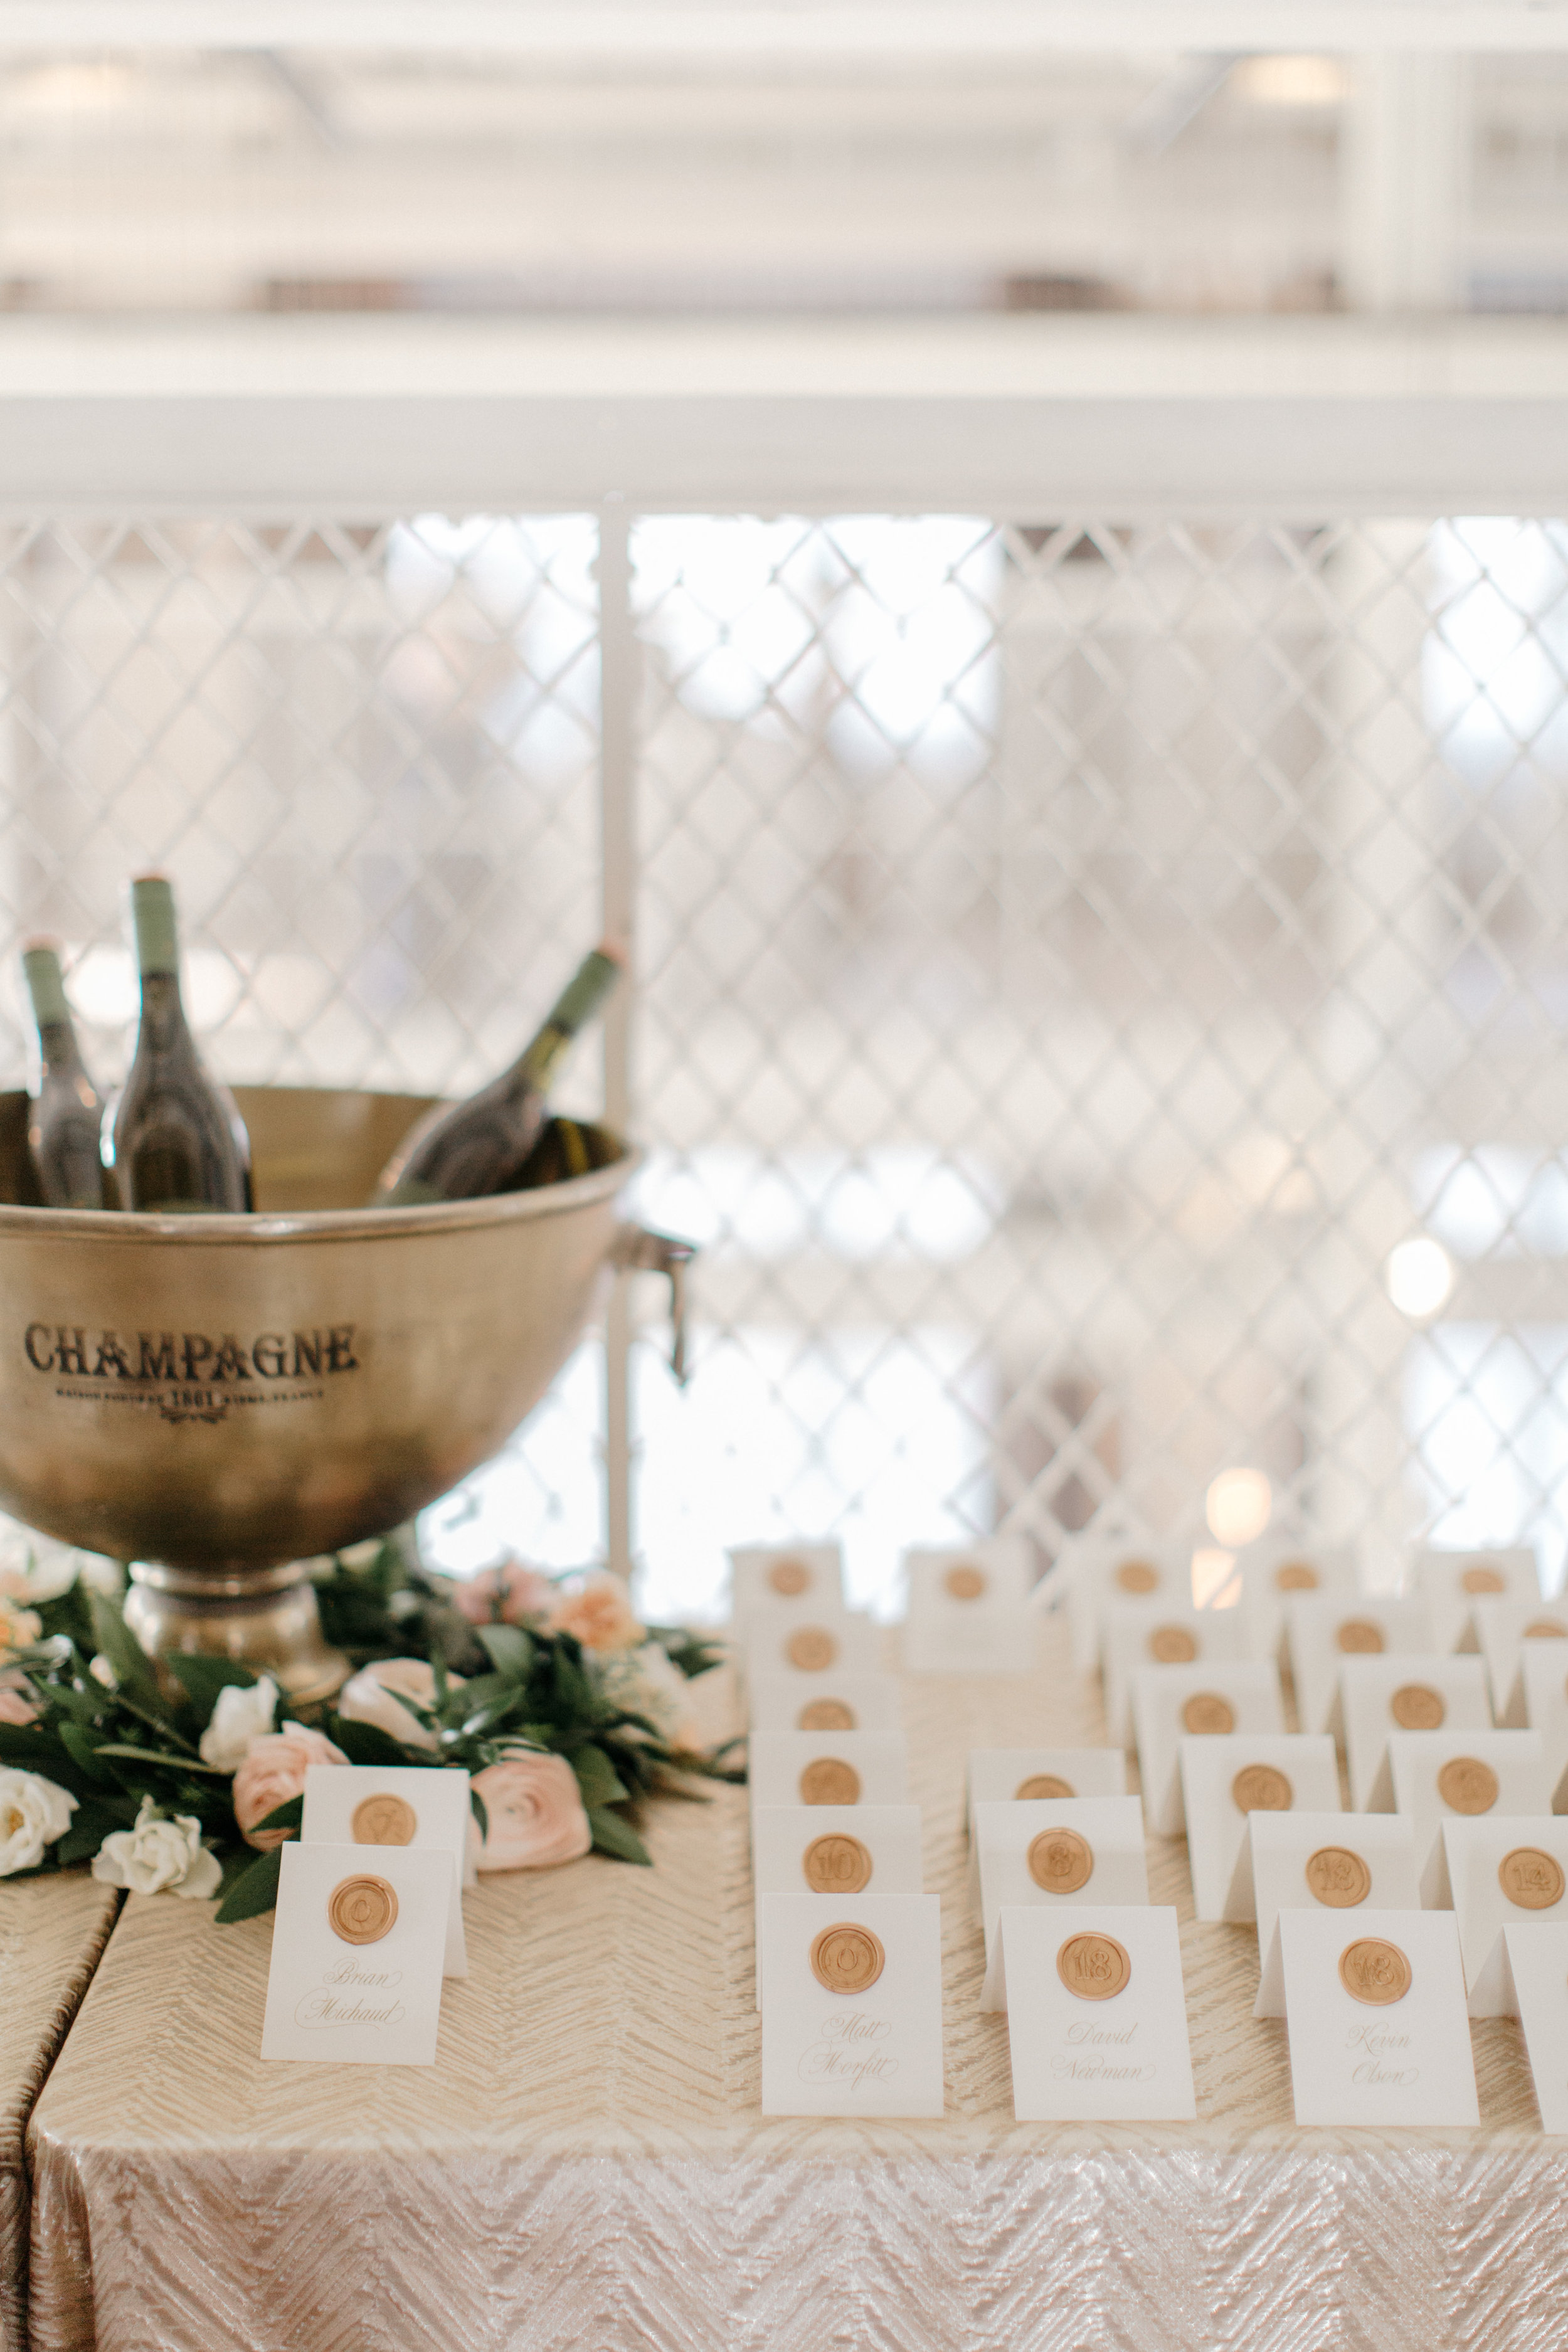 Champagne Press Wax Seal Escort Cards Rudys Event Rentals Champagne Bucket